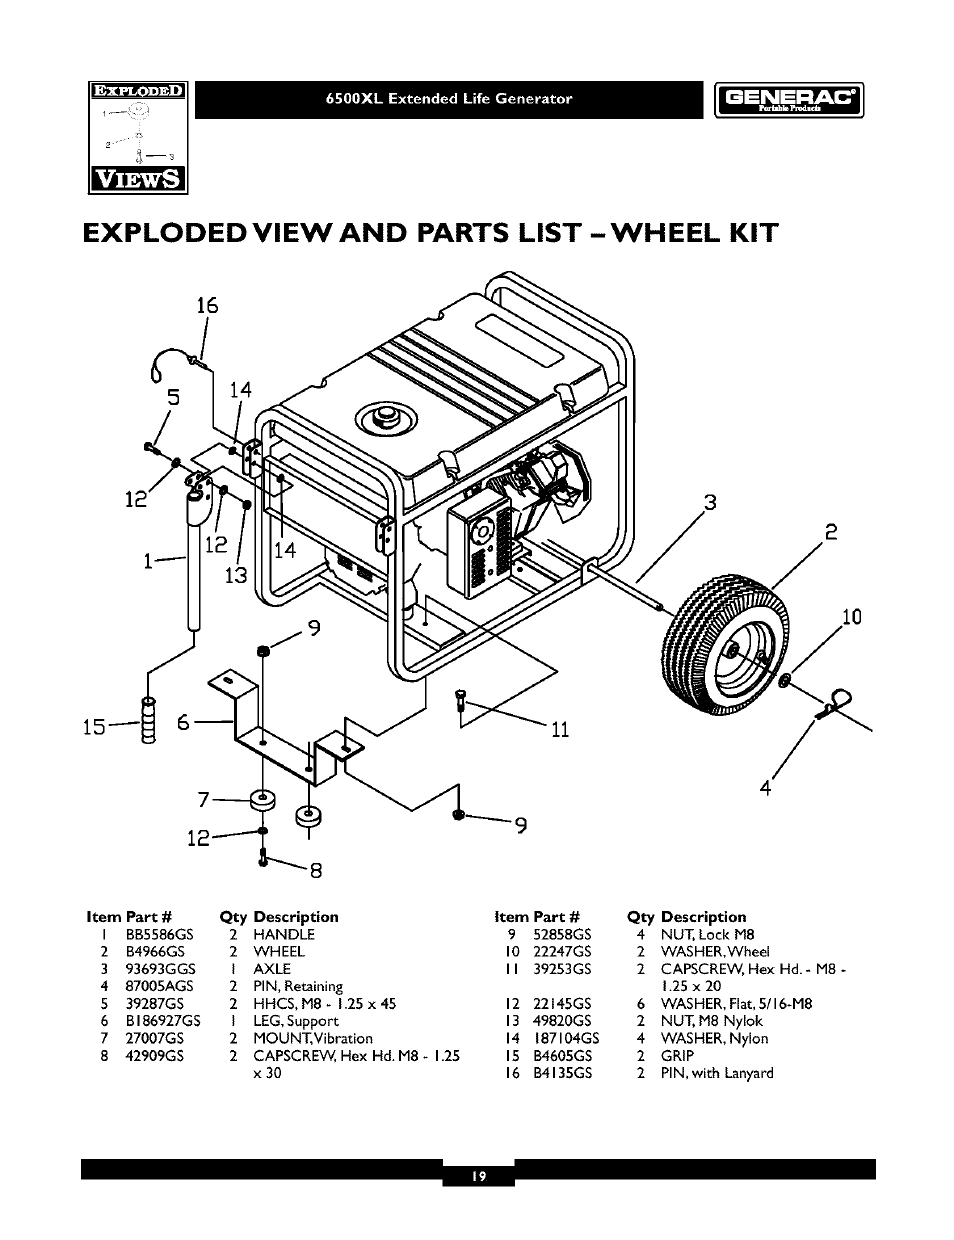 6500xl extended life generator, Exploded view and parts